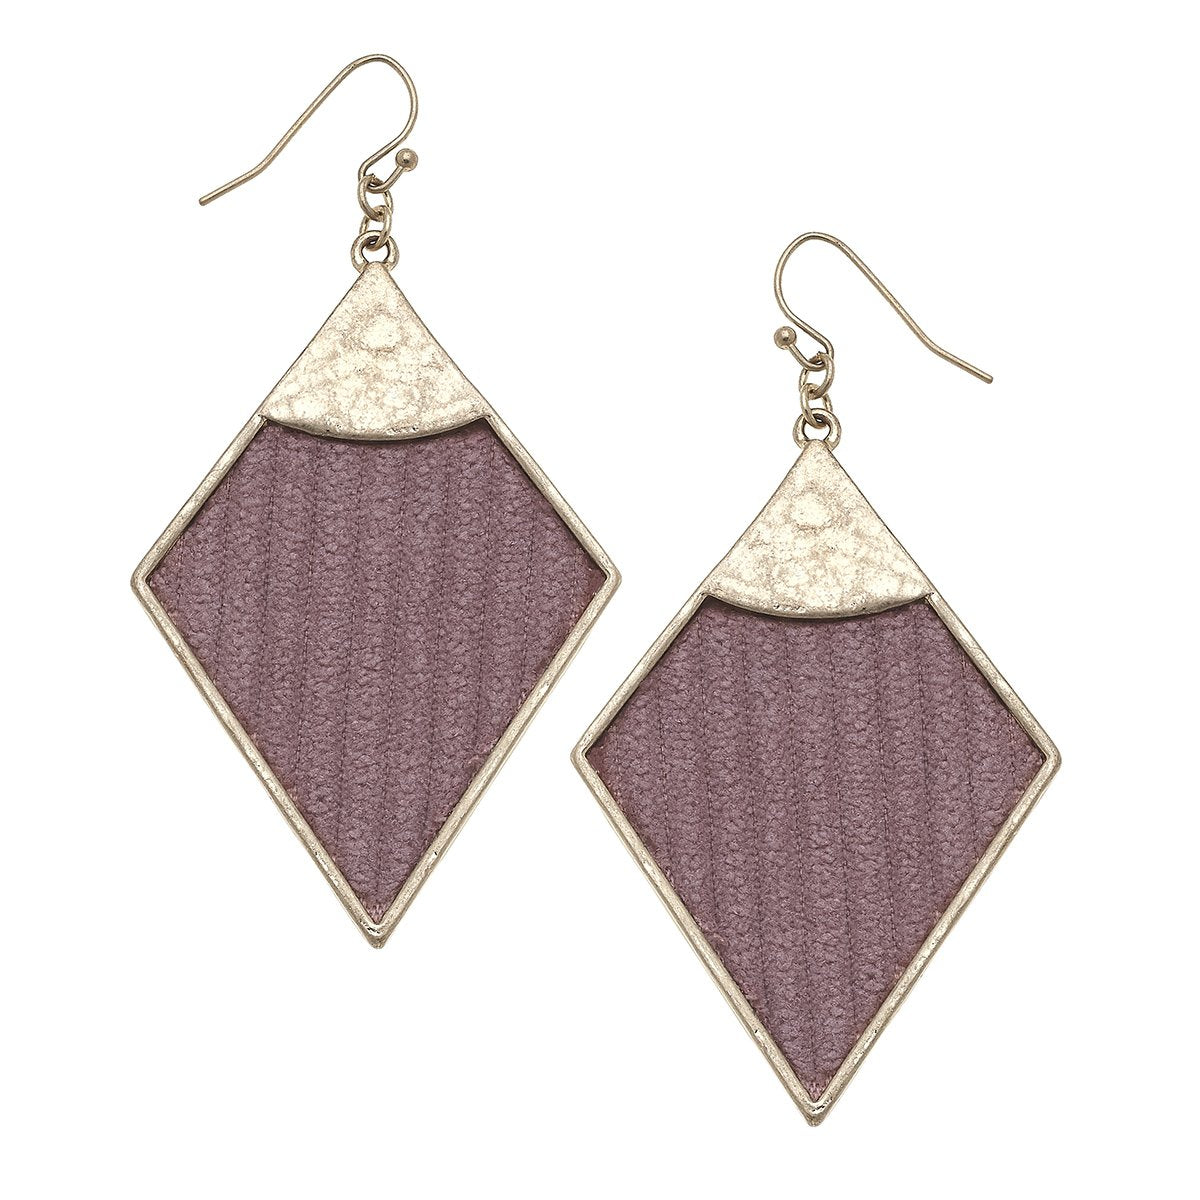 Velvet Diamond Drop Earrings in Mauve